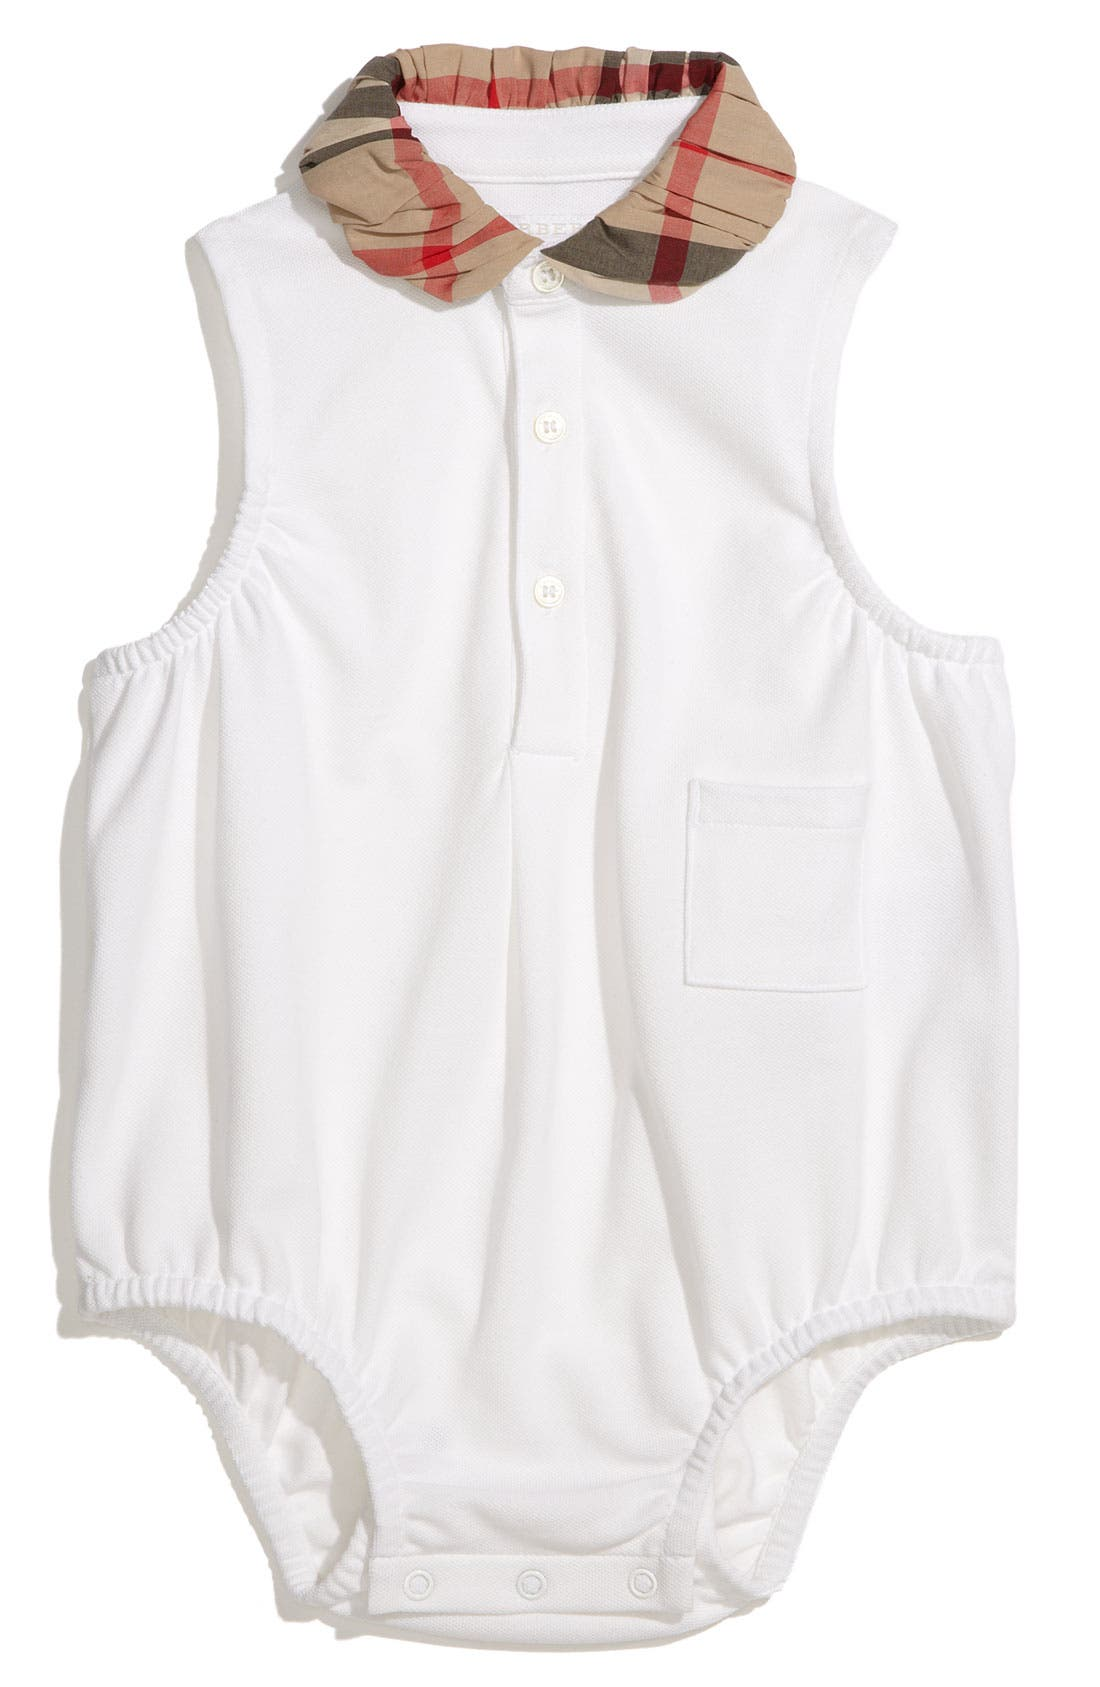 Alternate Image 1 Selected - Burberry Check Print Bodysuit (Infant)